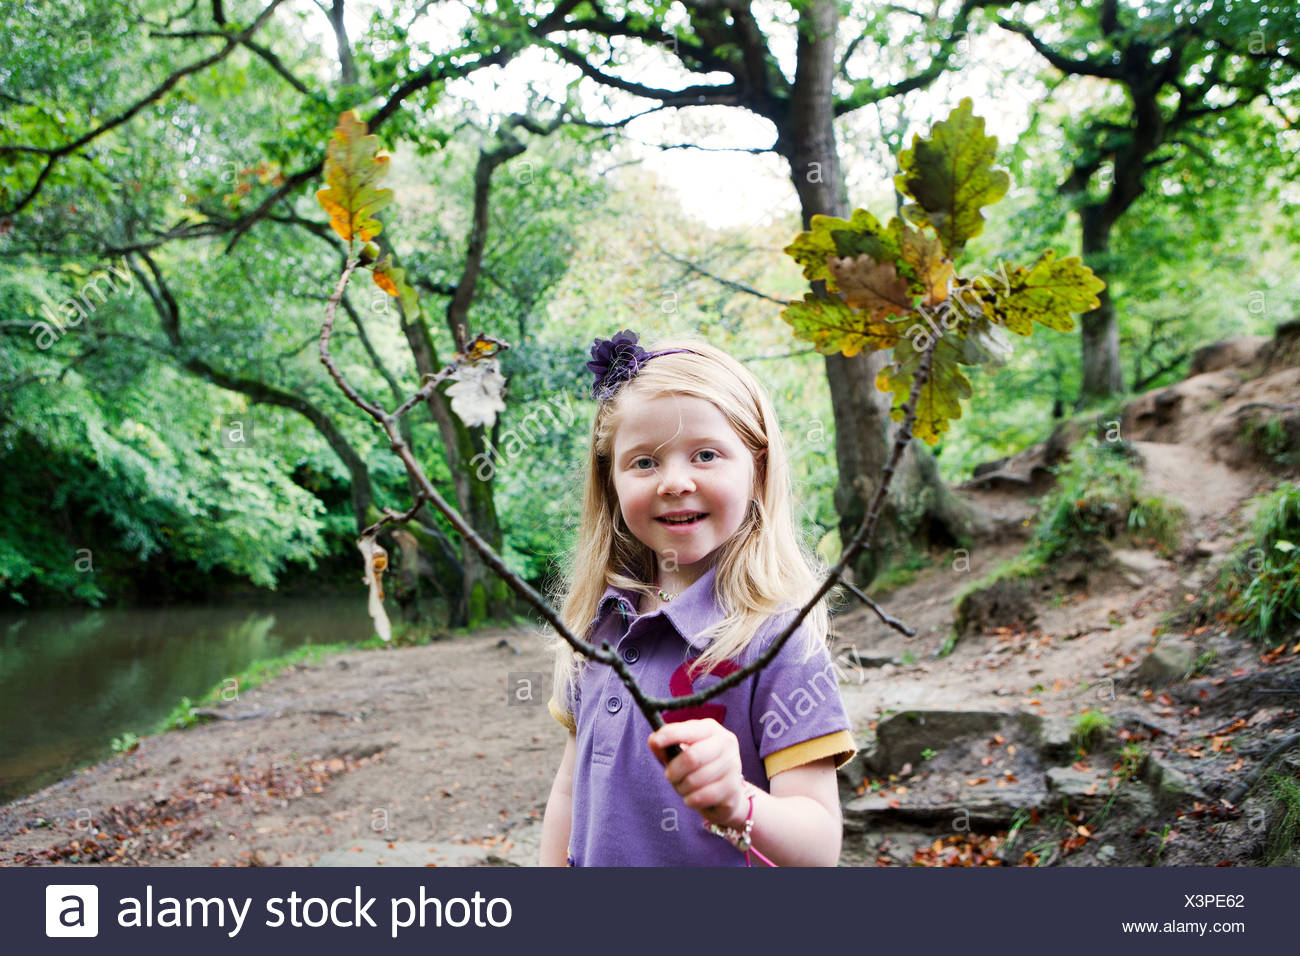 Girl holding an oak branch in a woodland - Stock Image